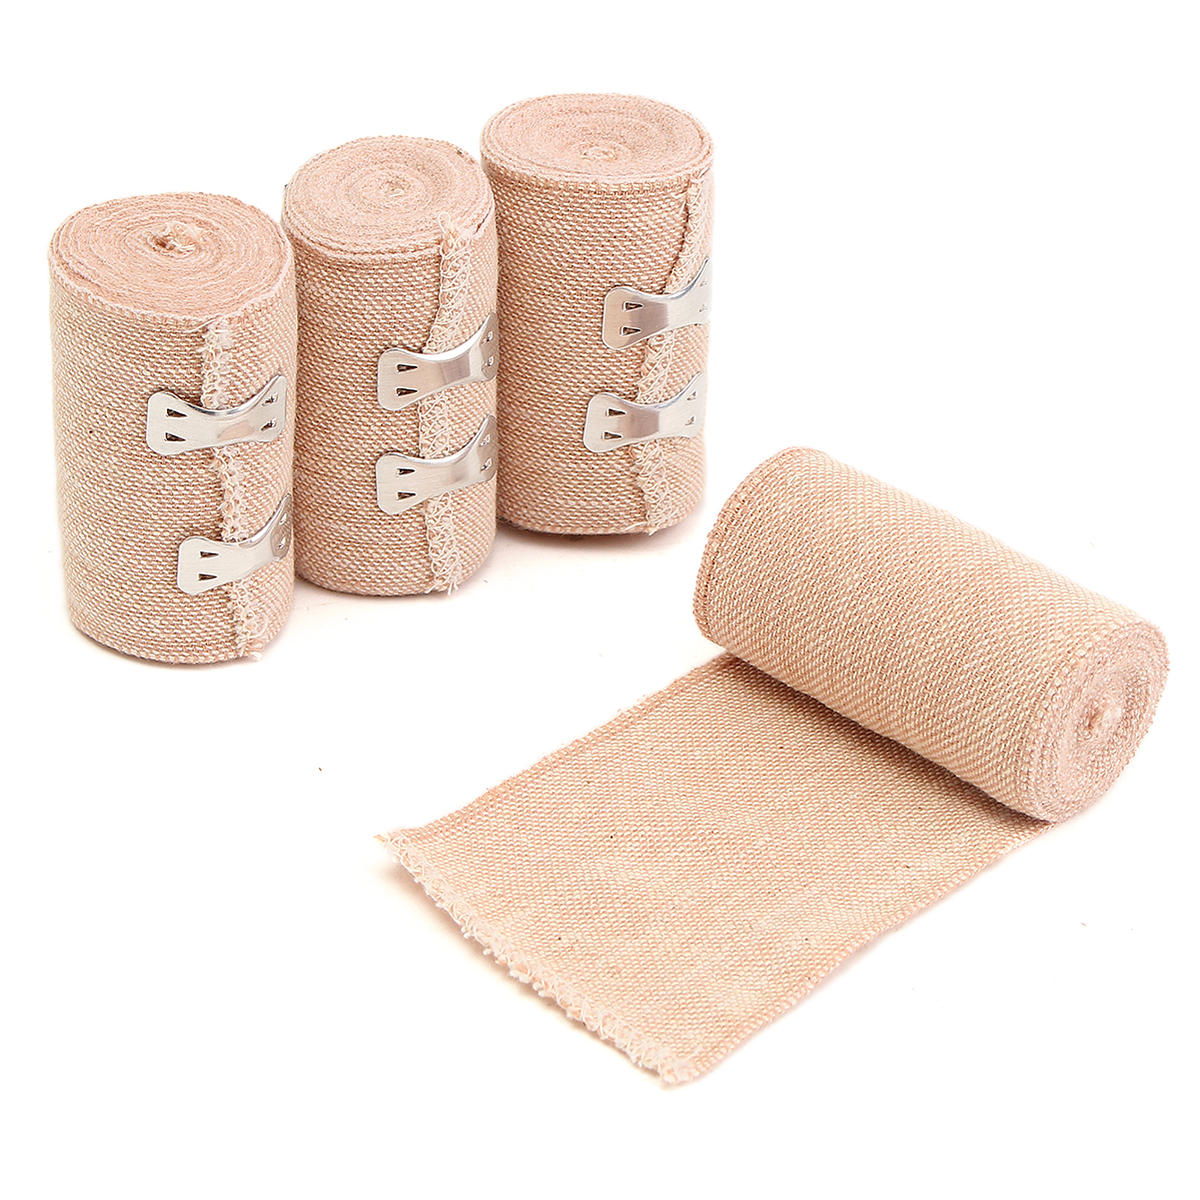 4 Rolls High Stretch Spandex Bandage Sports Training Sprain Ankle Protective Crepe Gauze Medical First Aid Elastic Adhesive Tape